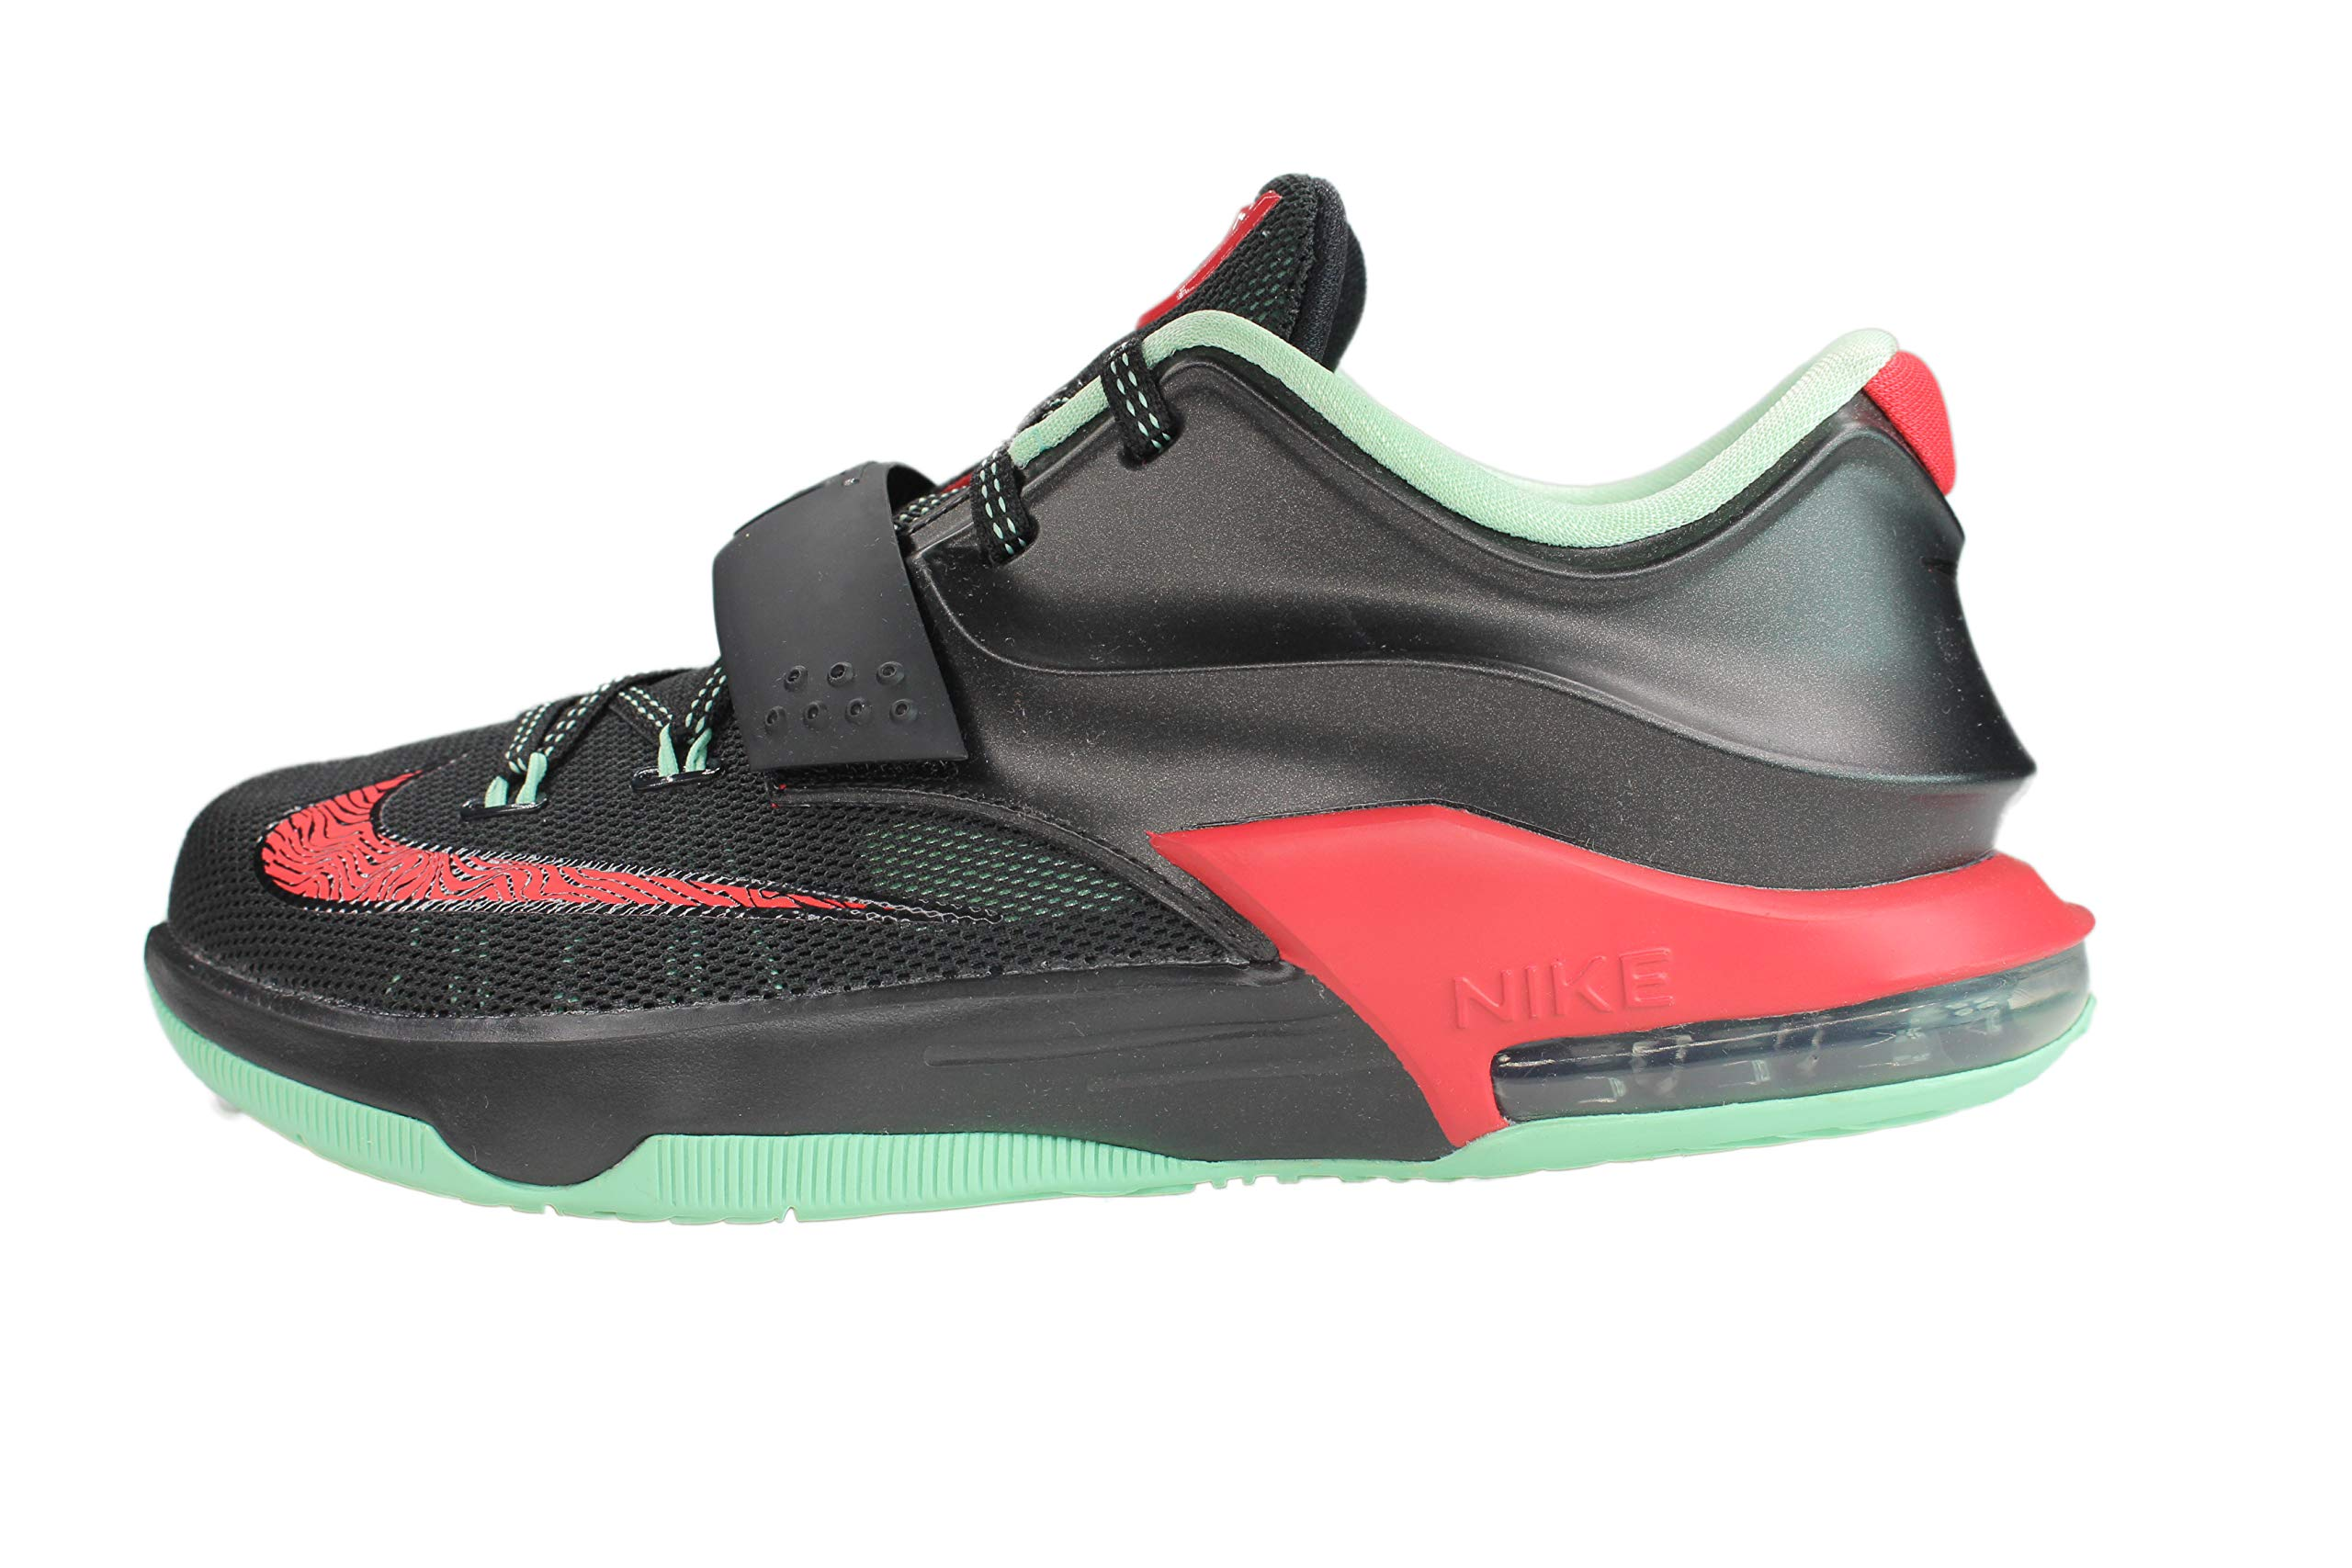 best sneakers fd4f1 91e0a Nike KD VII GS (Good Apples) Black/Medium Mint-Action Red (6)